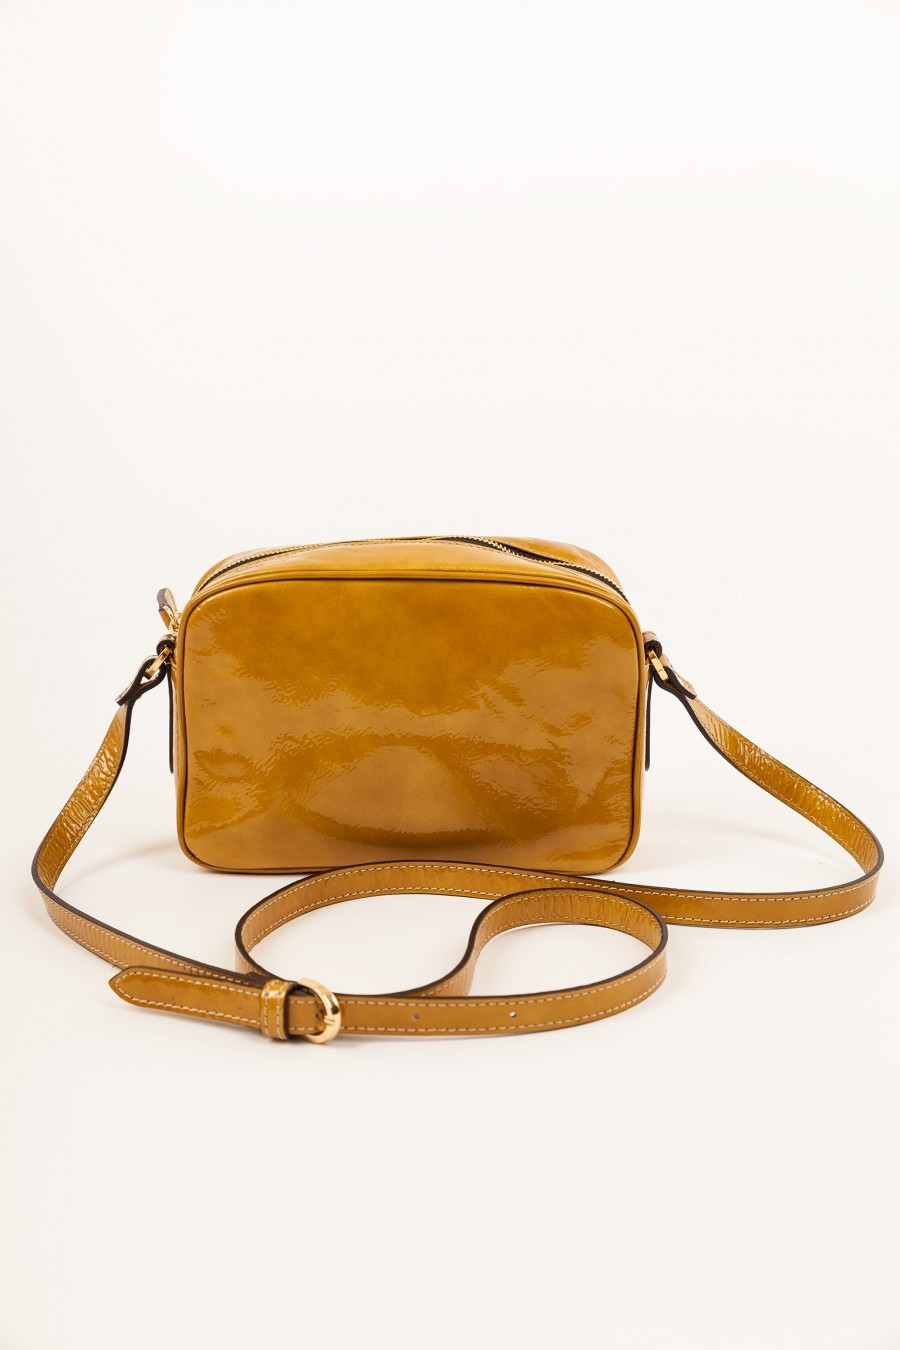 patent leather lazzari bag